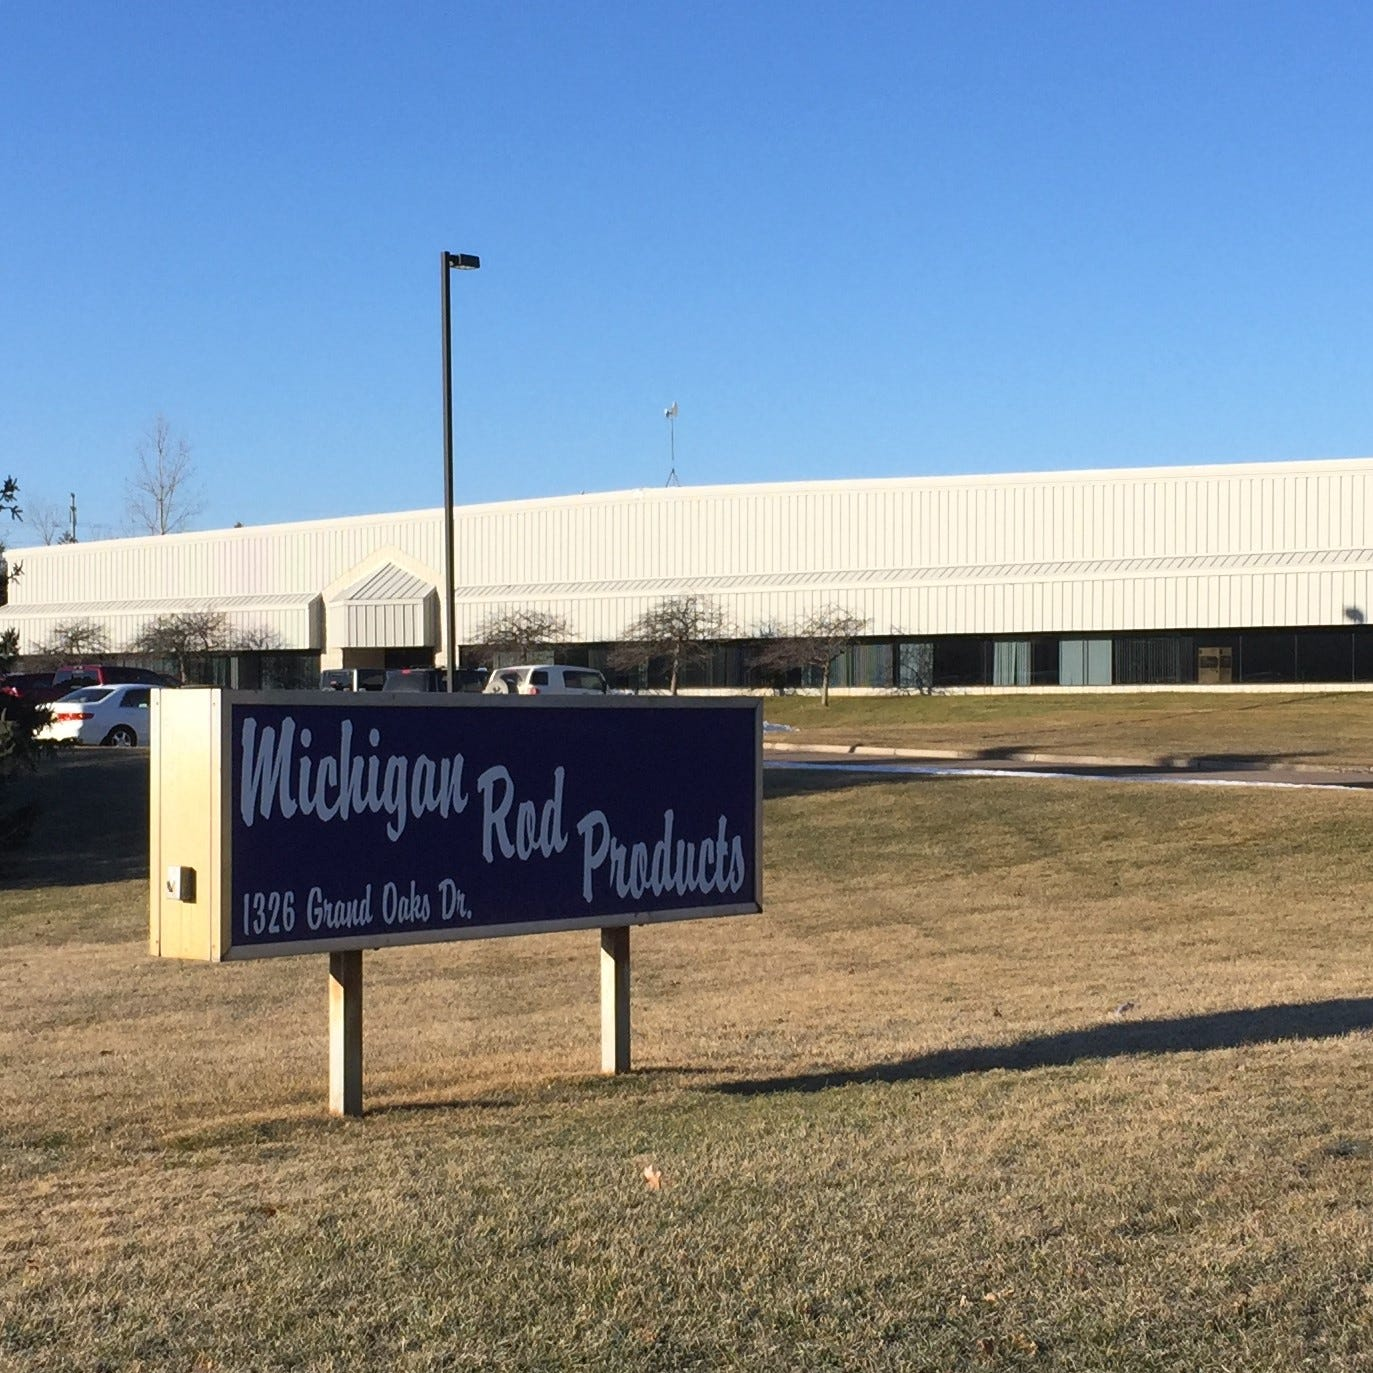 Auto industry parts supplier to expand manufacturing facility near Howell